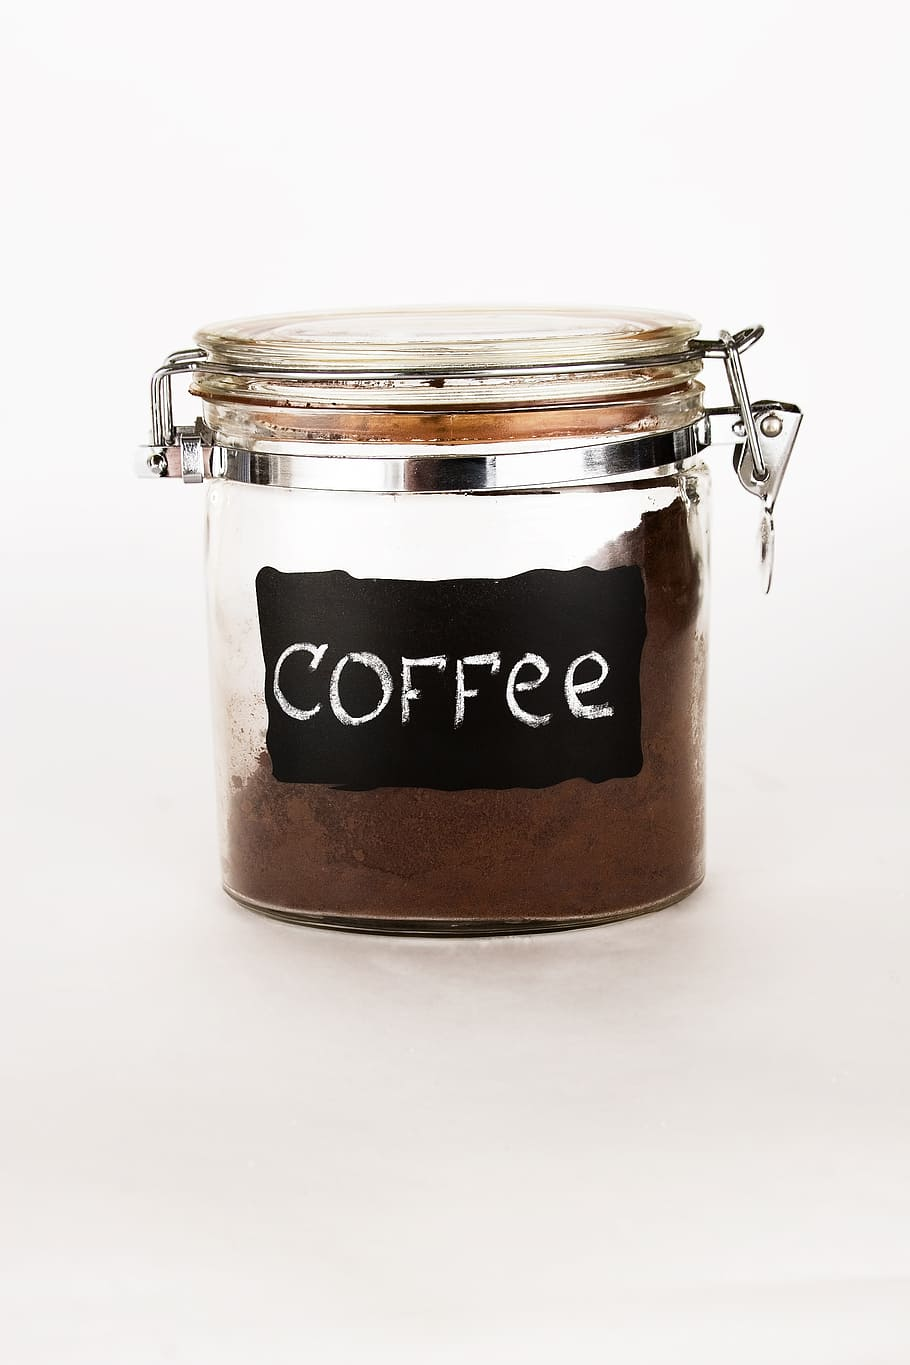 Where to Shop and What to Buy? (2020)-Coffee Powder